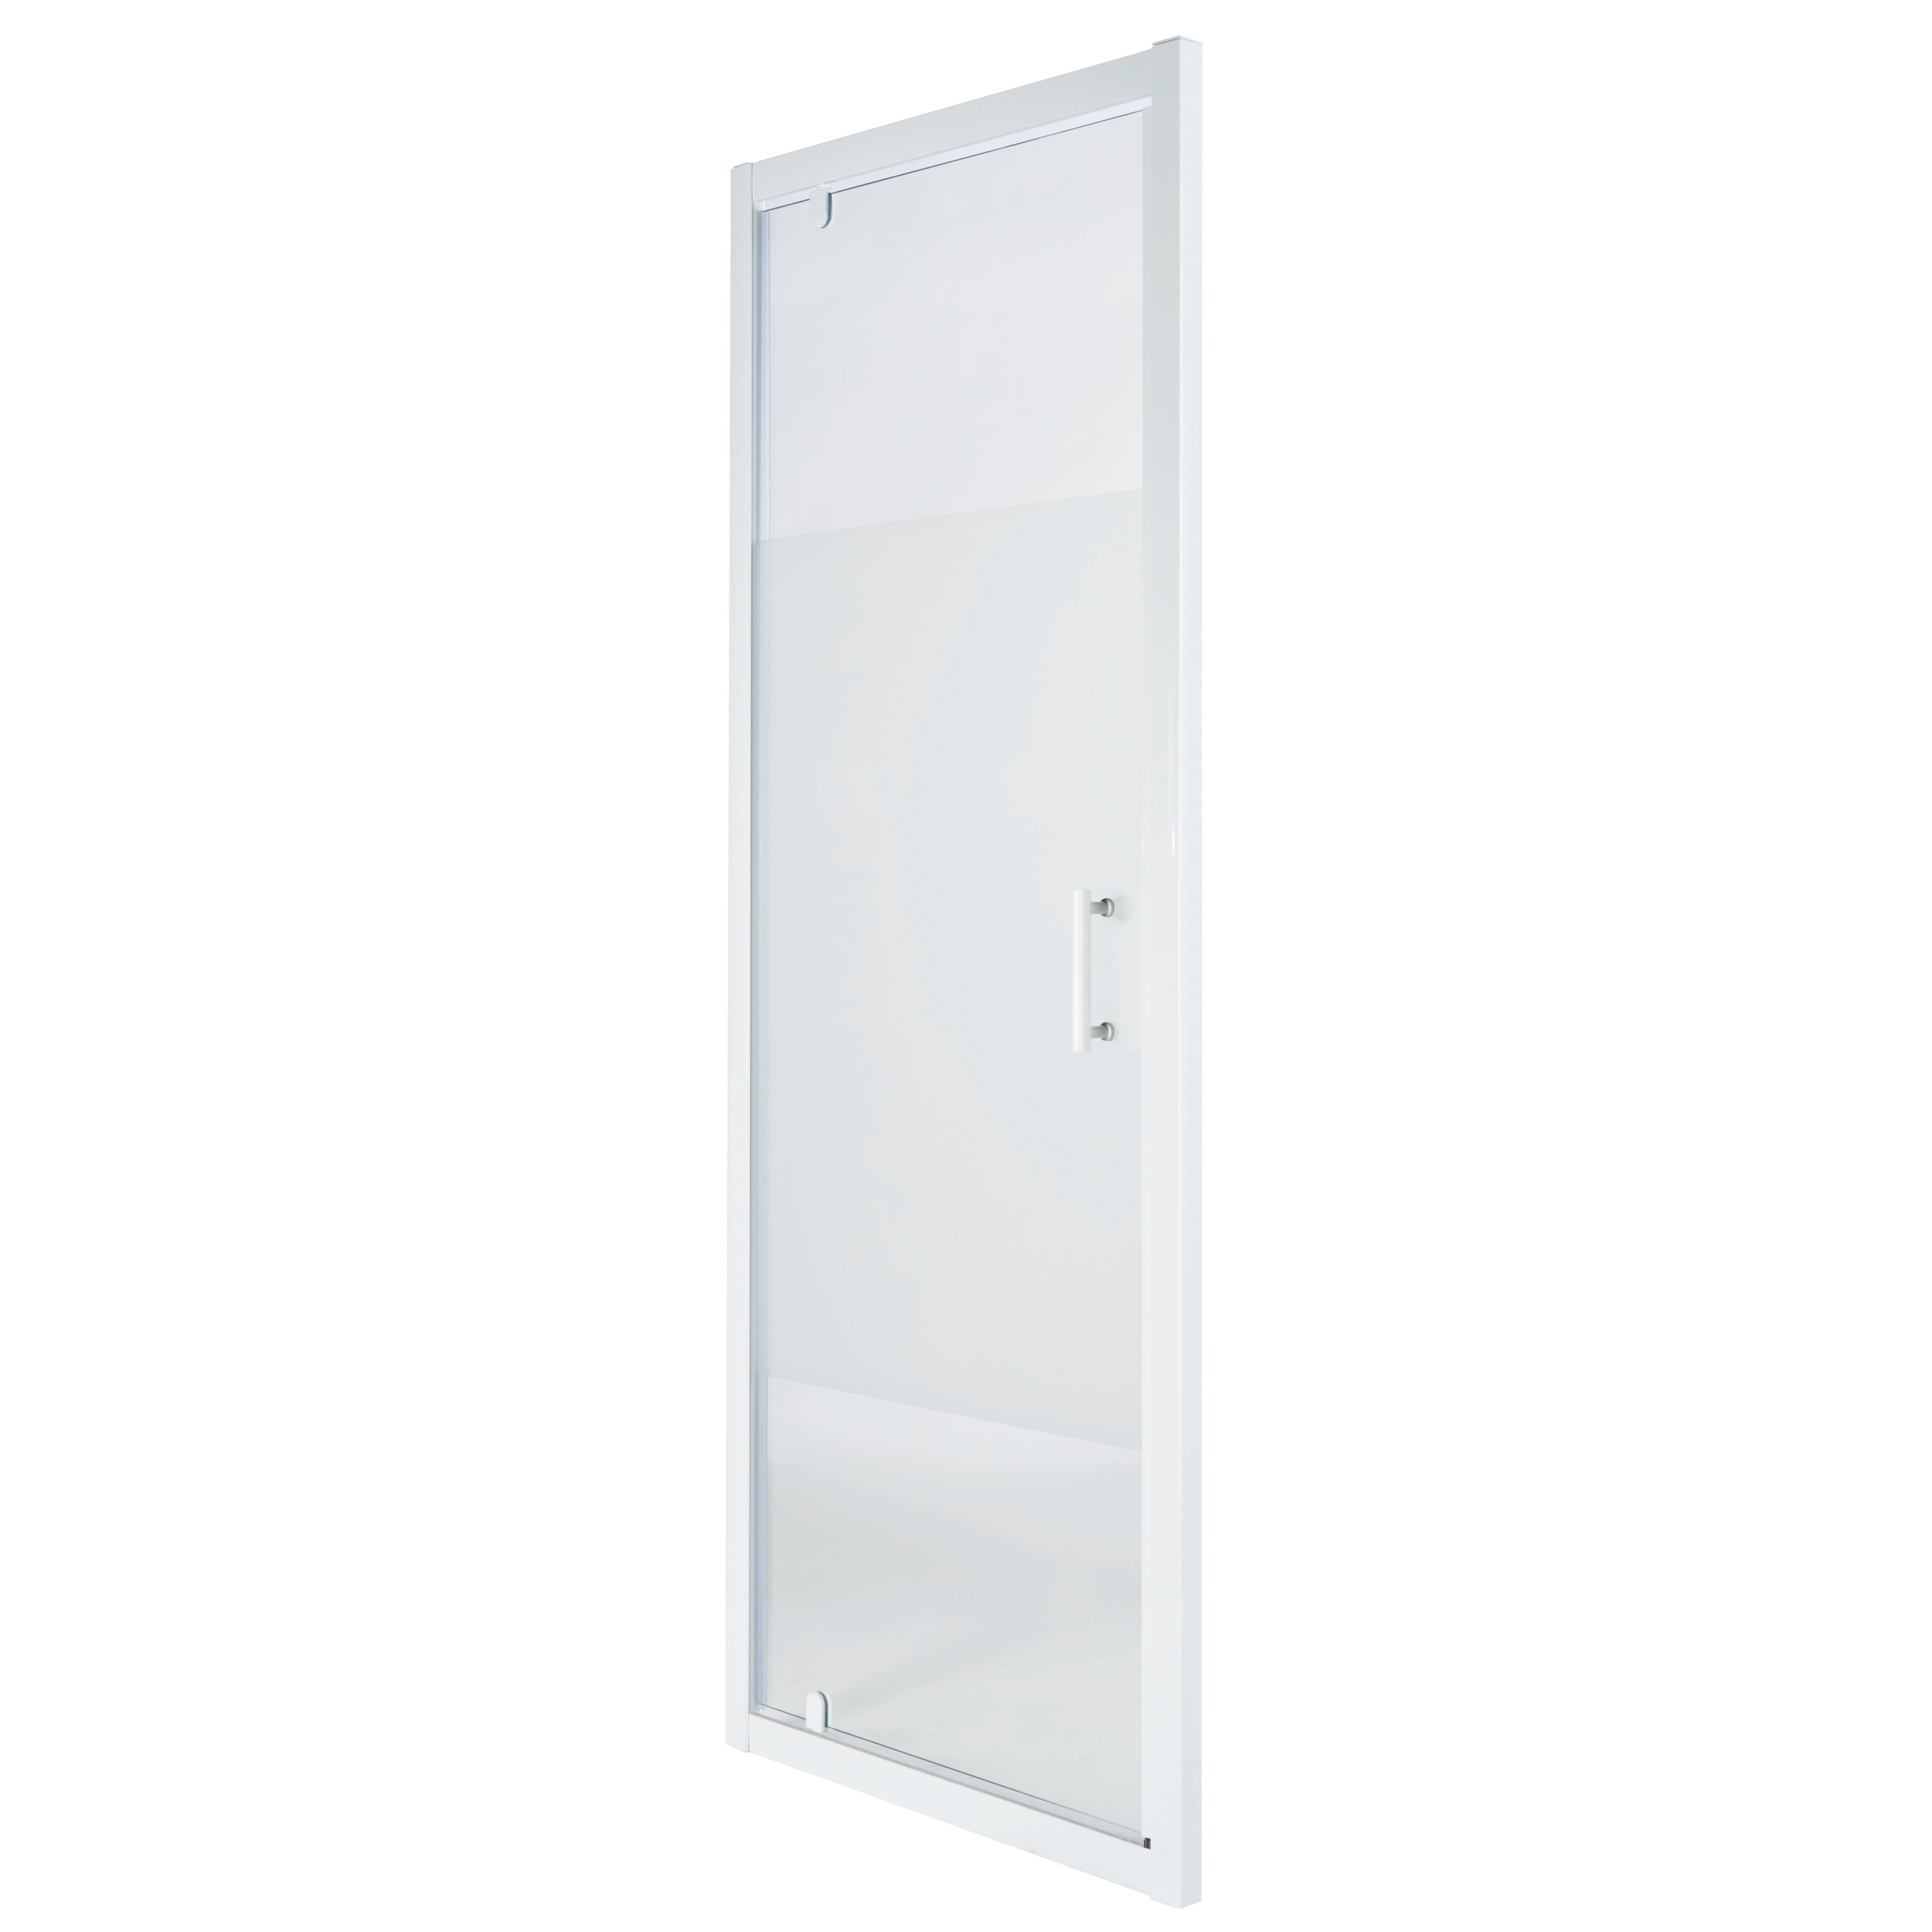 Cooke & Lewis Onega Pivot Shower Door With Frosted Effect Glass (w)760mm